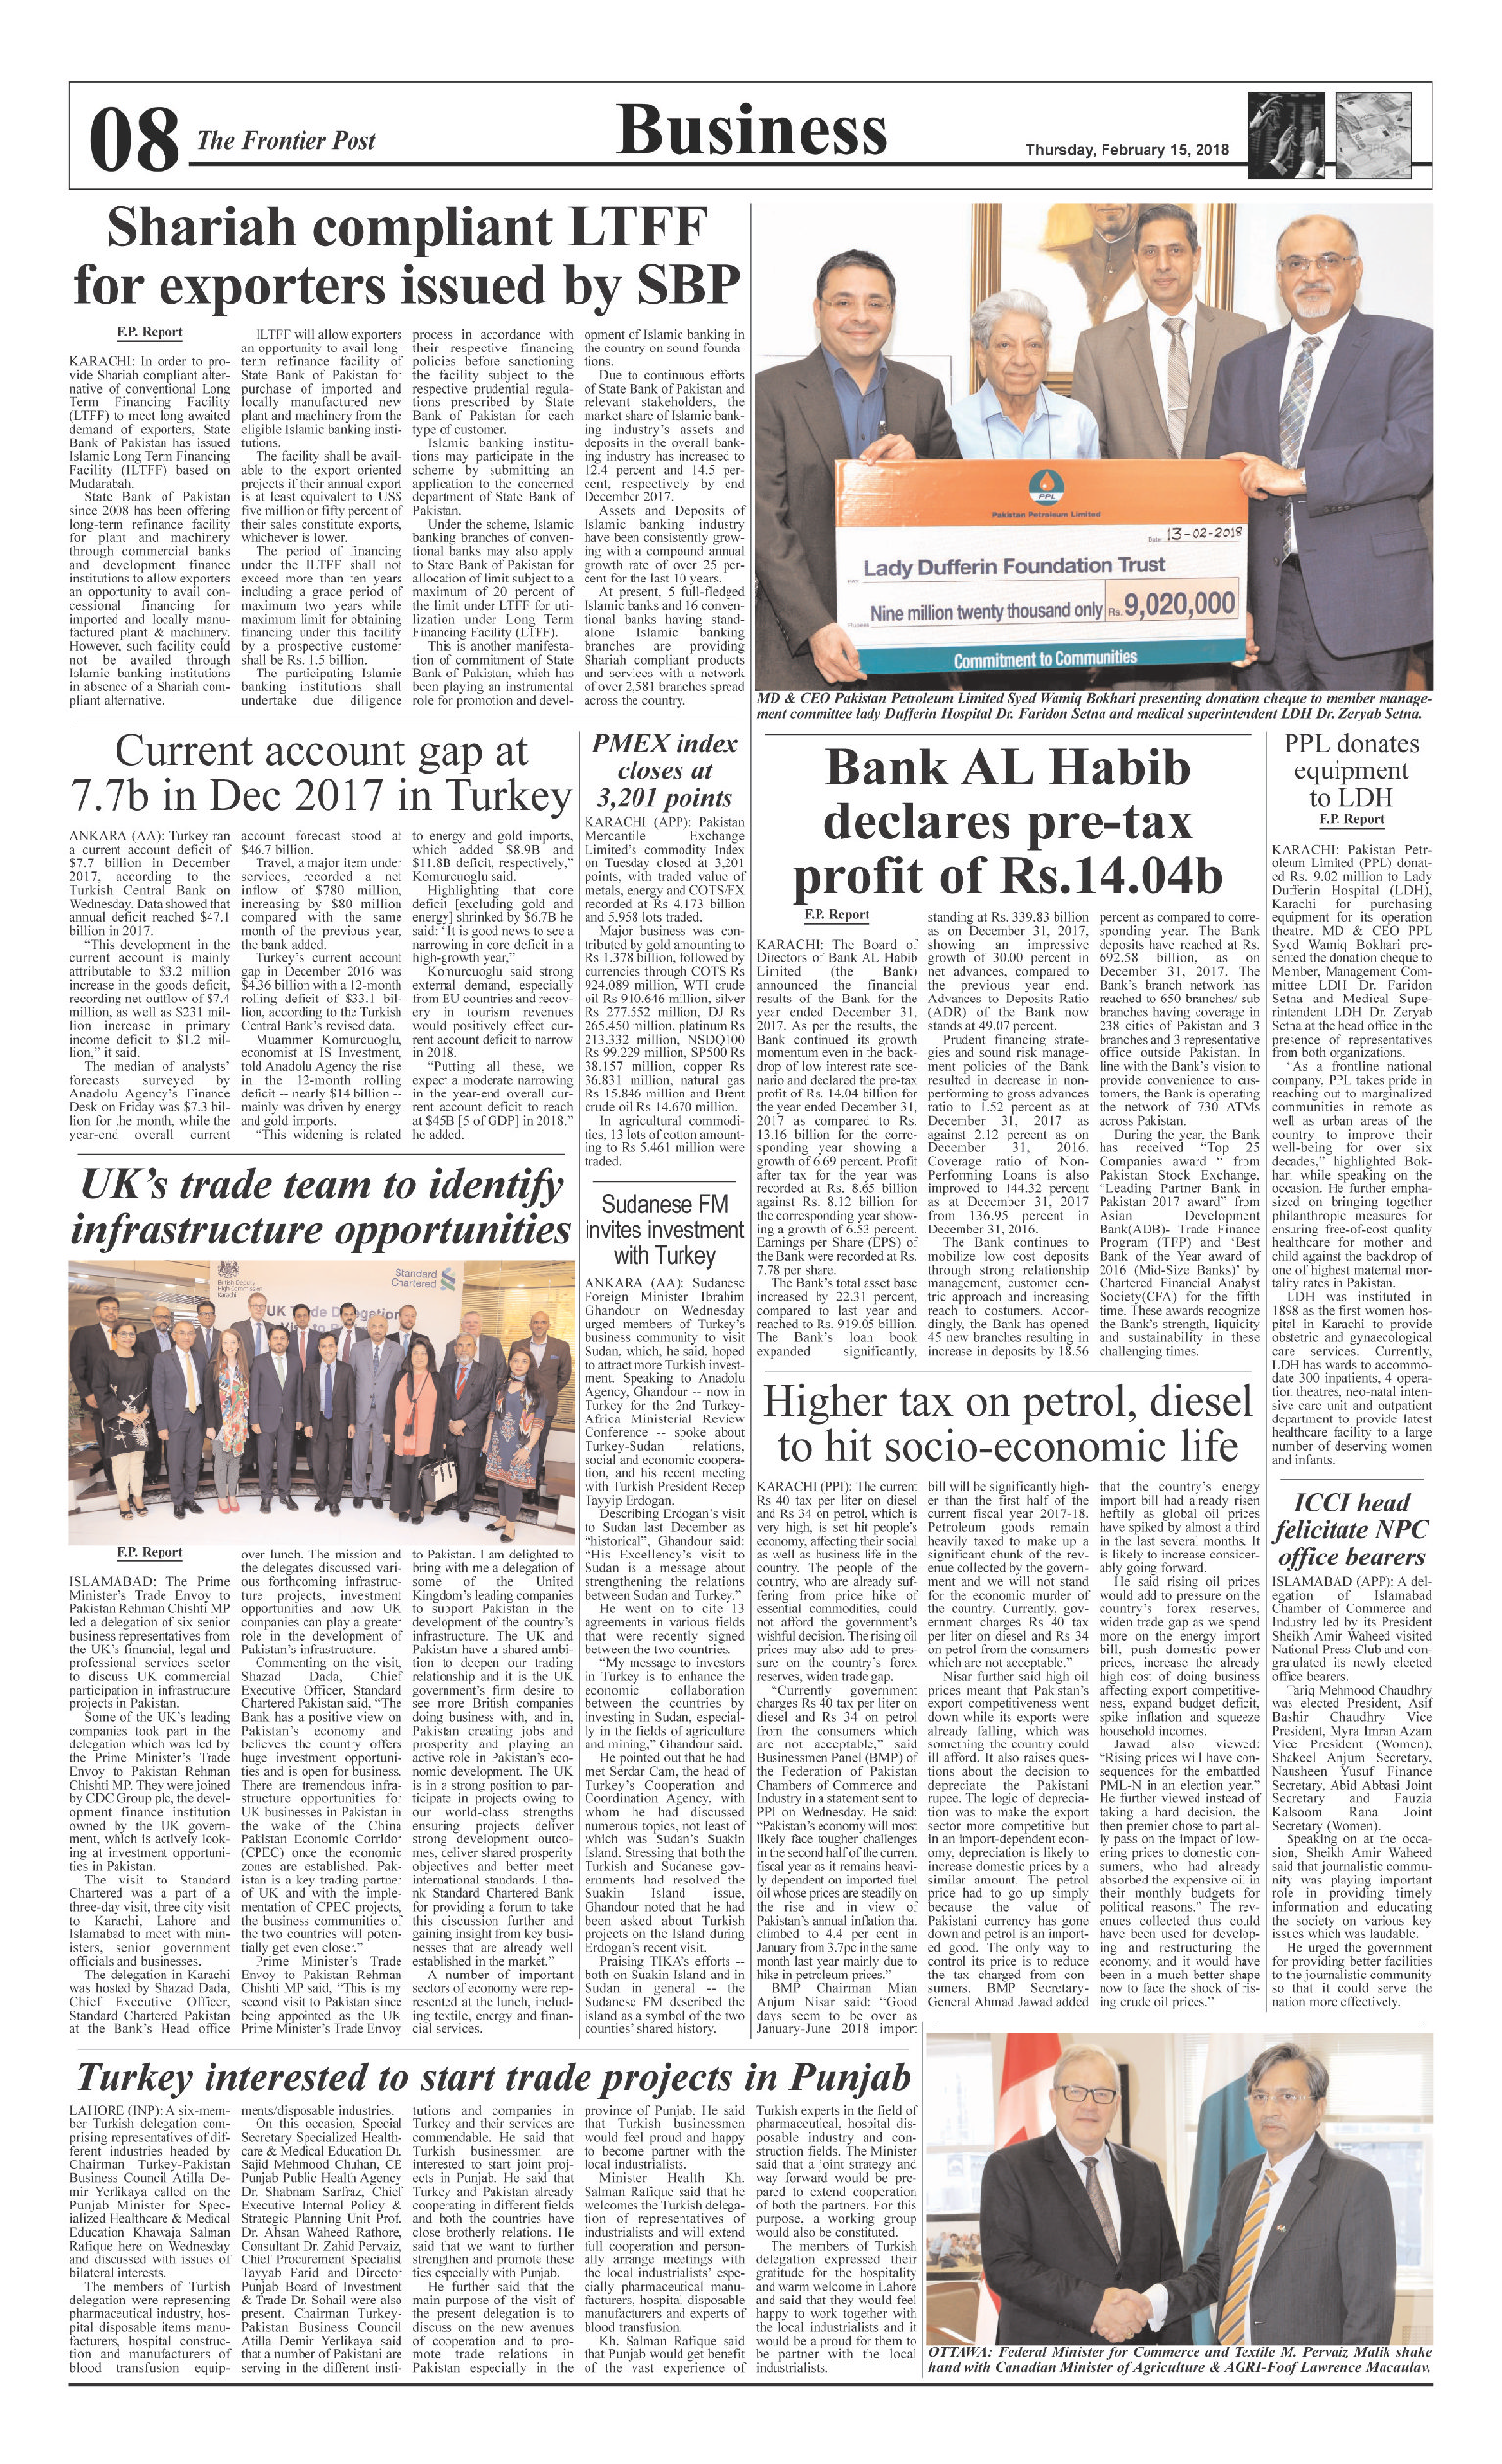 Business Page 15-02